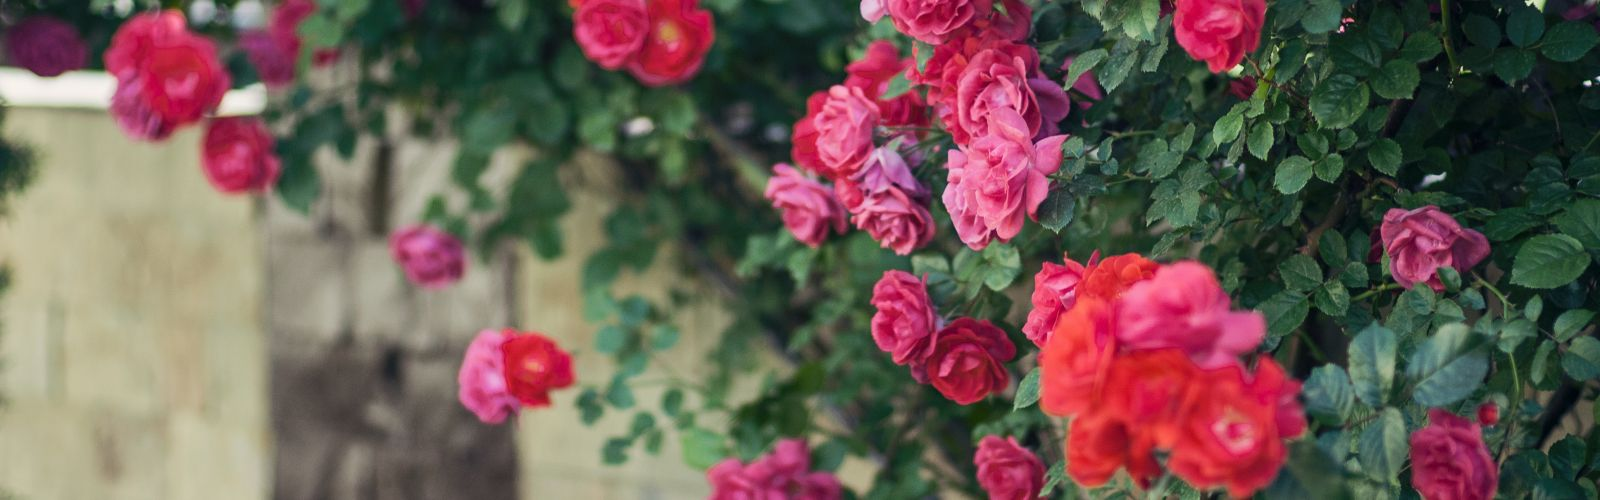 Red roses climbing on a fence